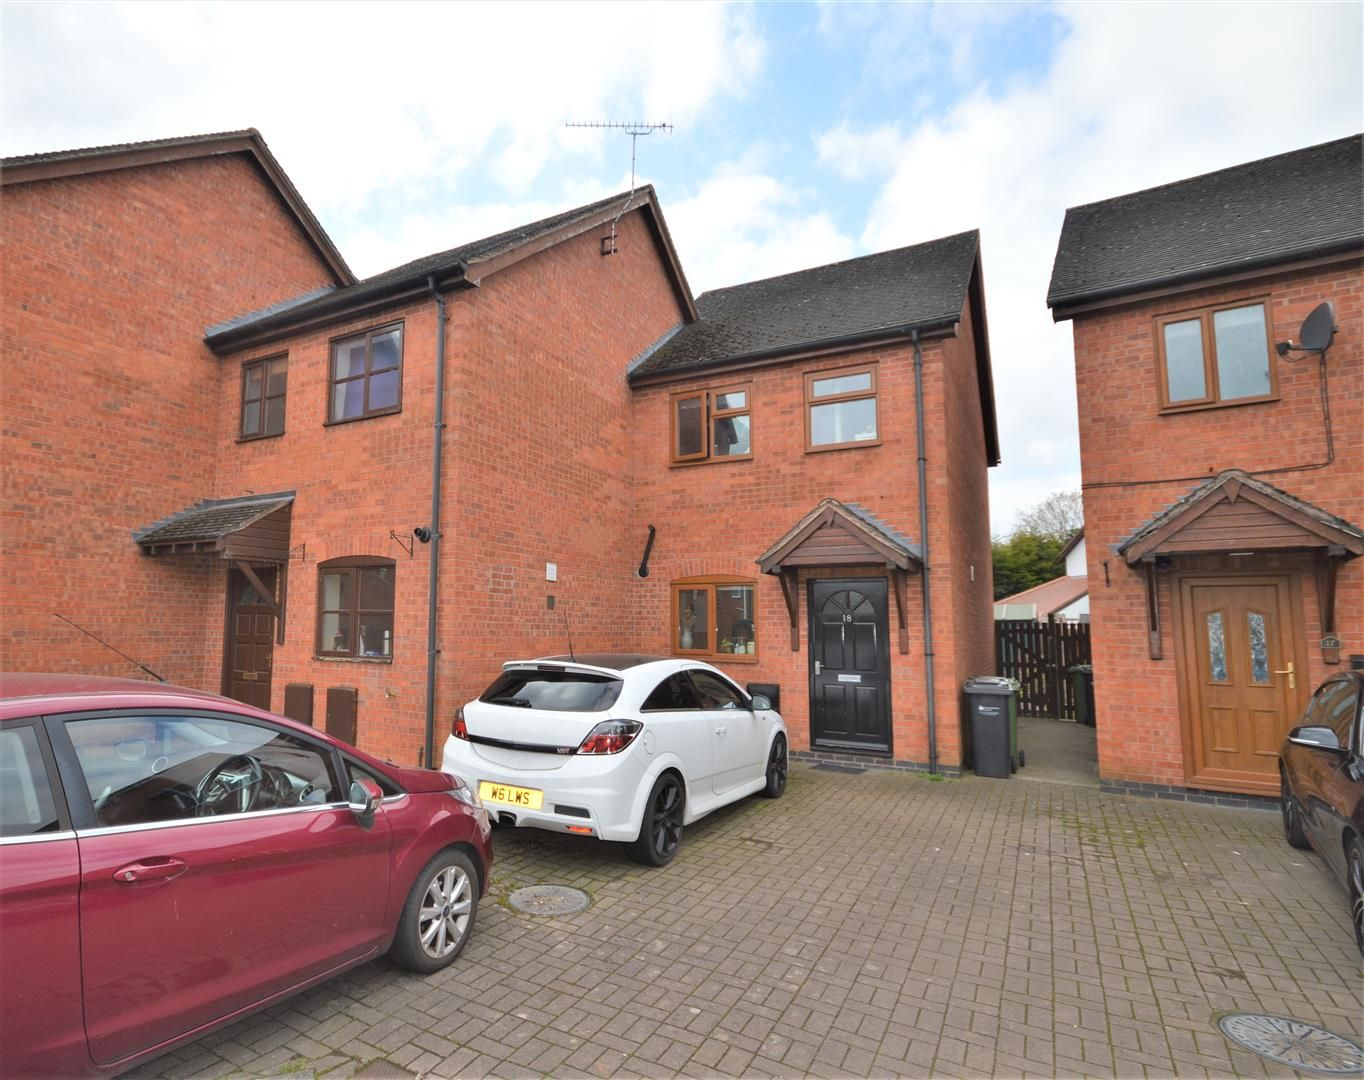 2 bed end of terrace for sale in Lower Bullingham, HR2